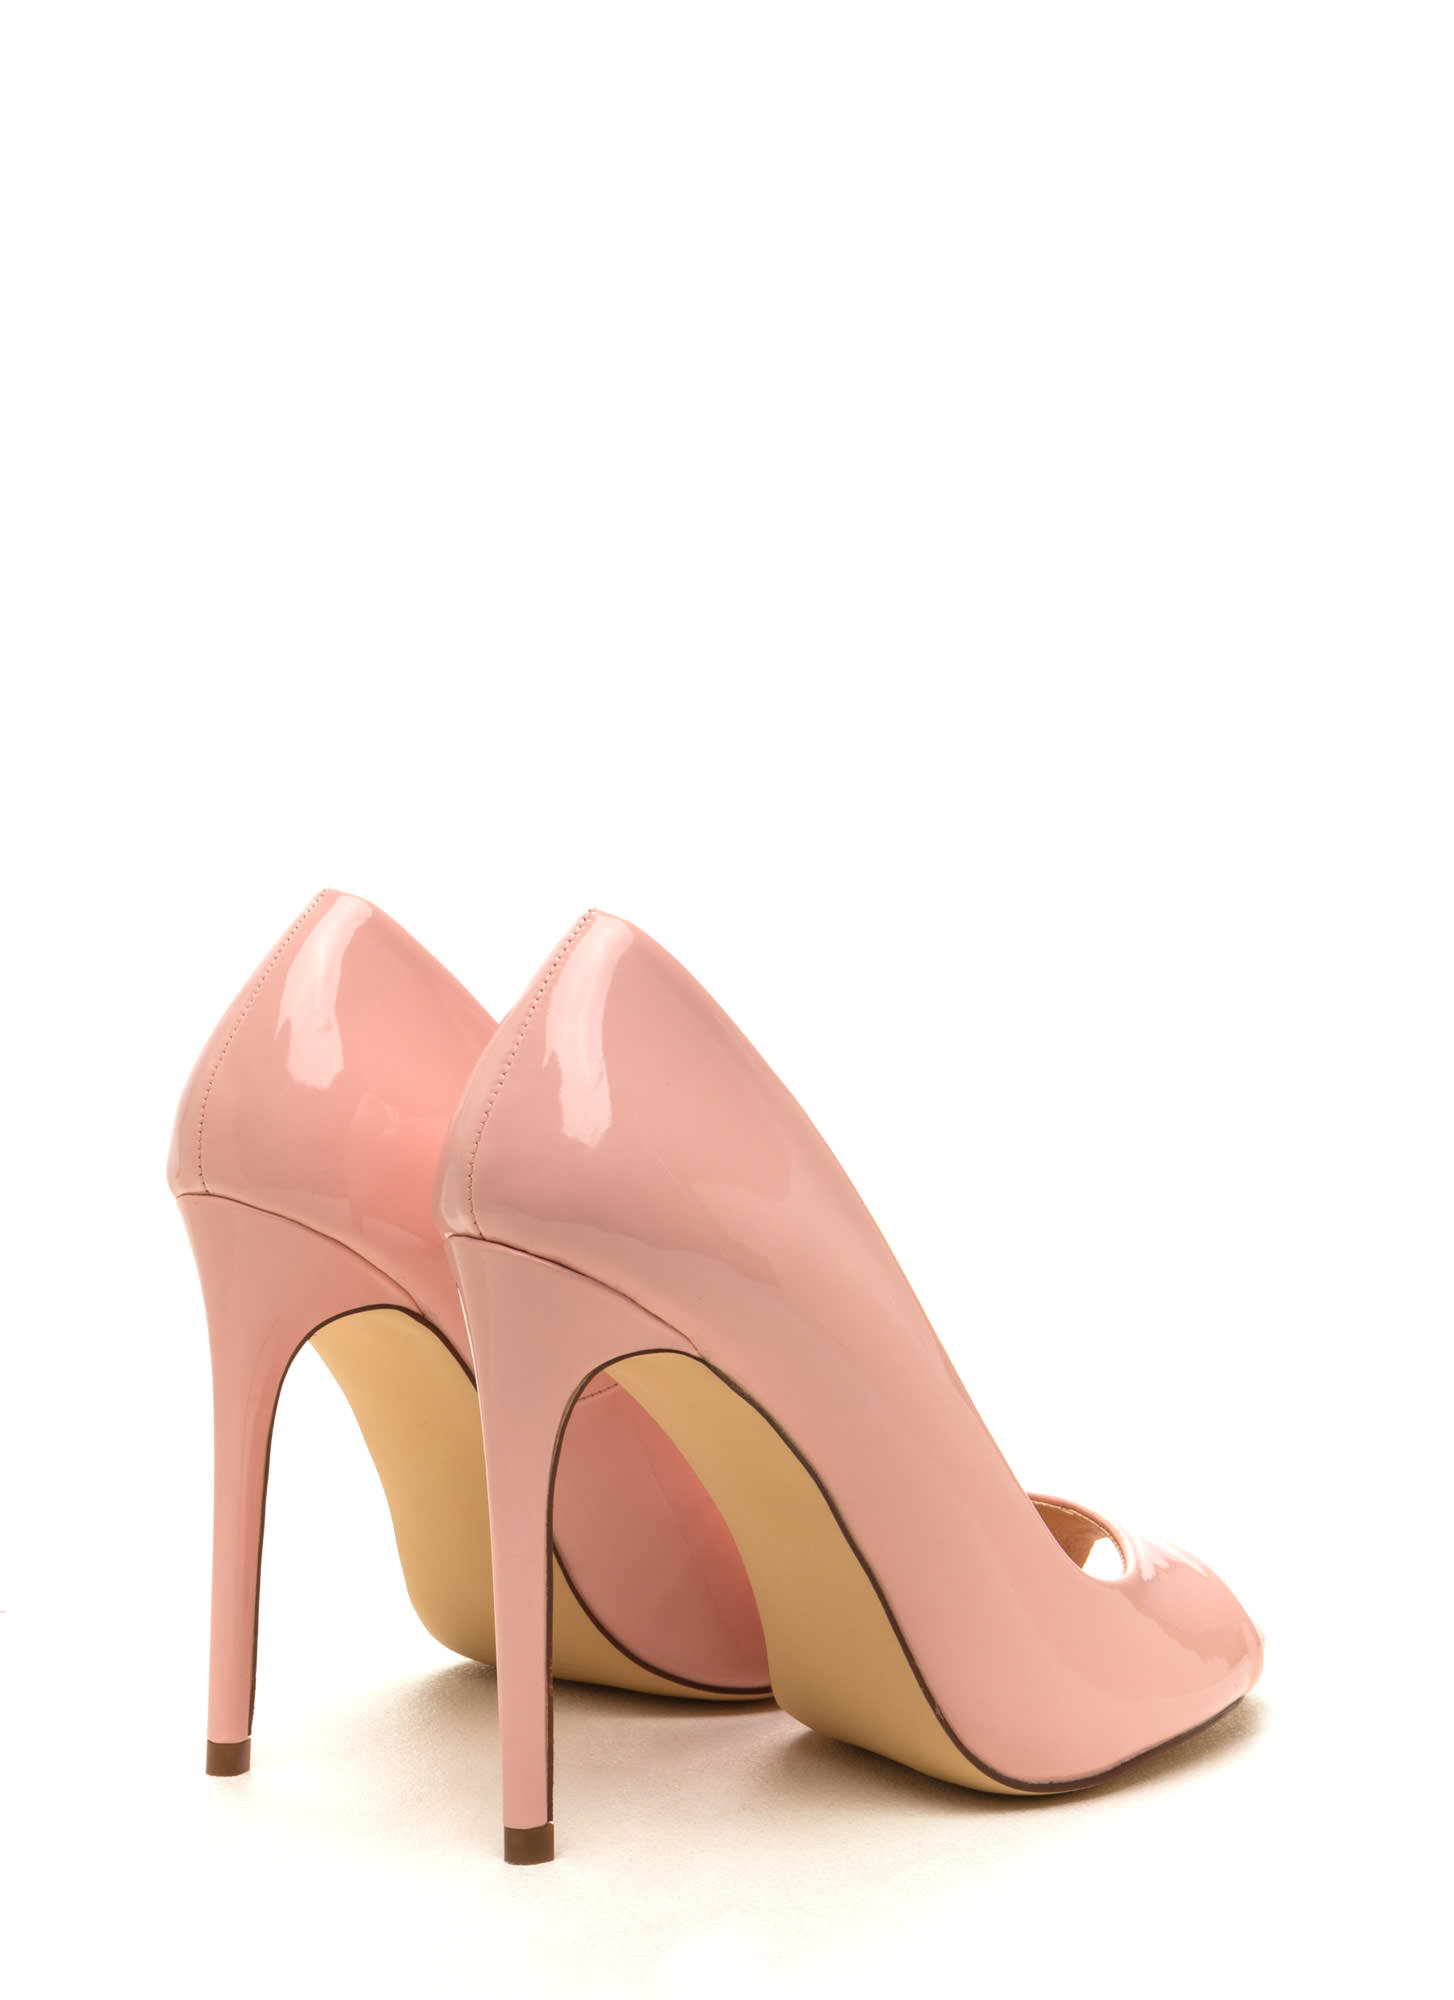 Peep Show Faux Patent Leather Pumps BLUSH